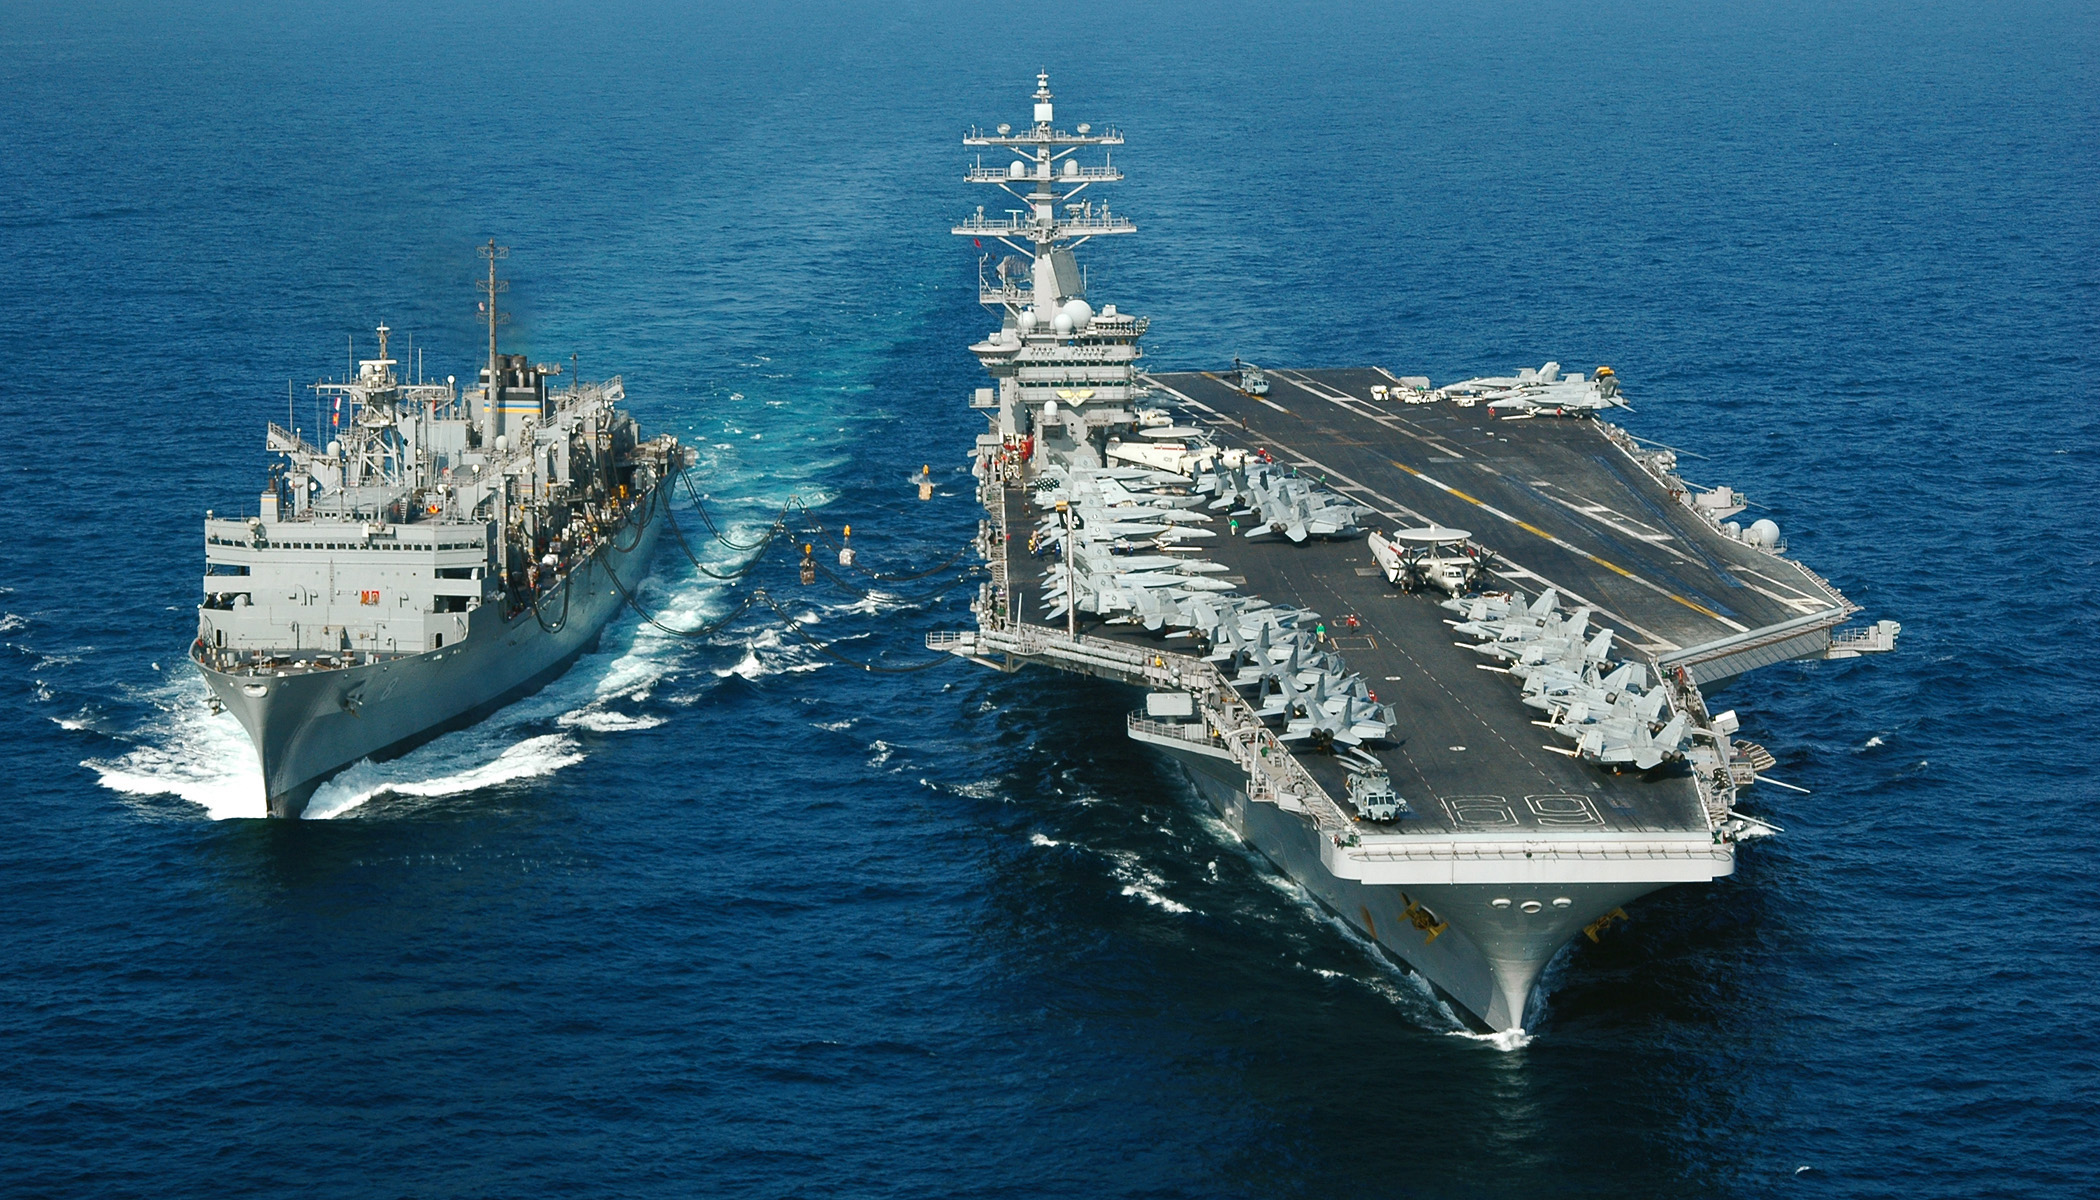 http://upload.wikimedia.org/wikipedia/commons/d/de/Aircraft_carrier_at_underway_replenishment.jpg?width=600